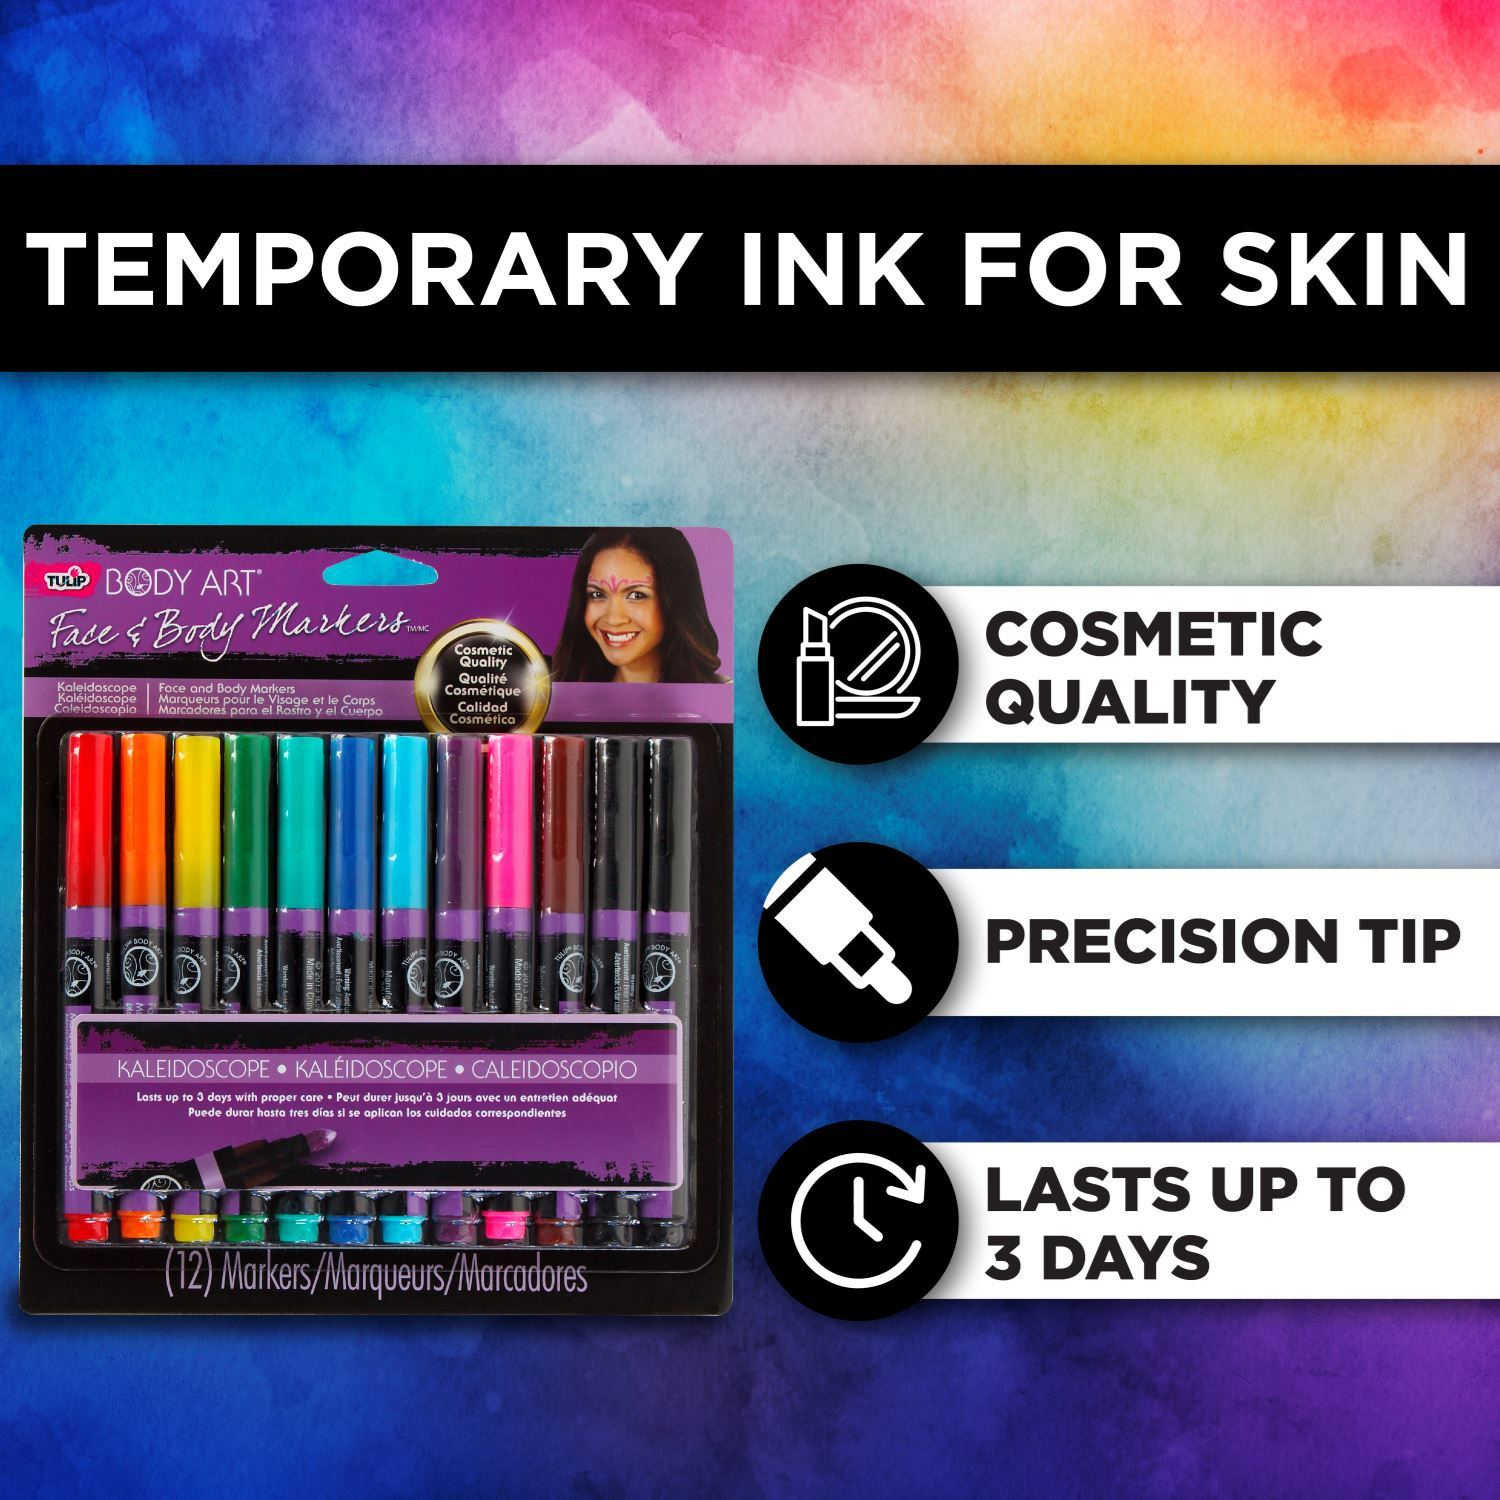 32671 Body Art Face & Body Markers Kaleidoscope 12 Pack Infographic 1